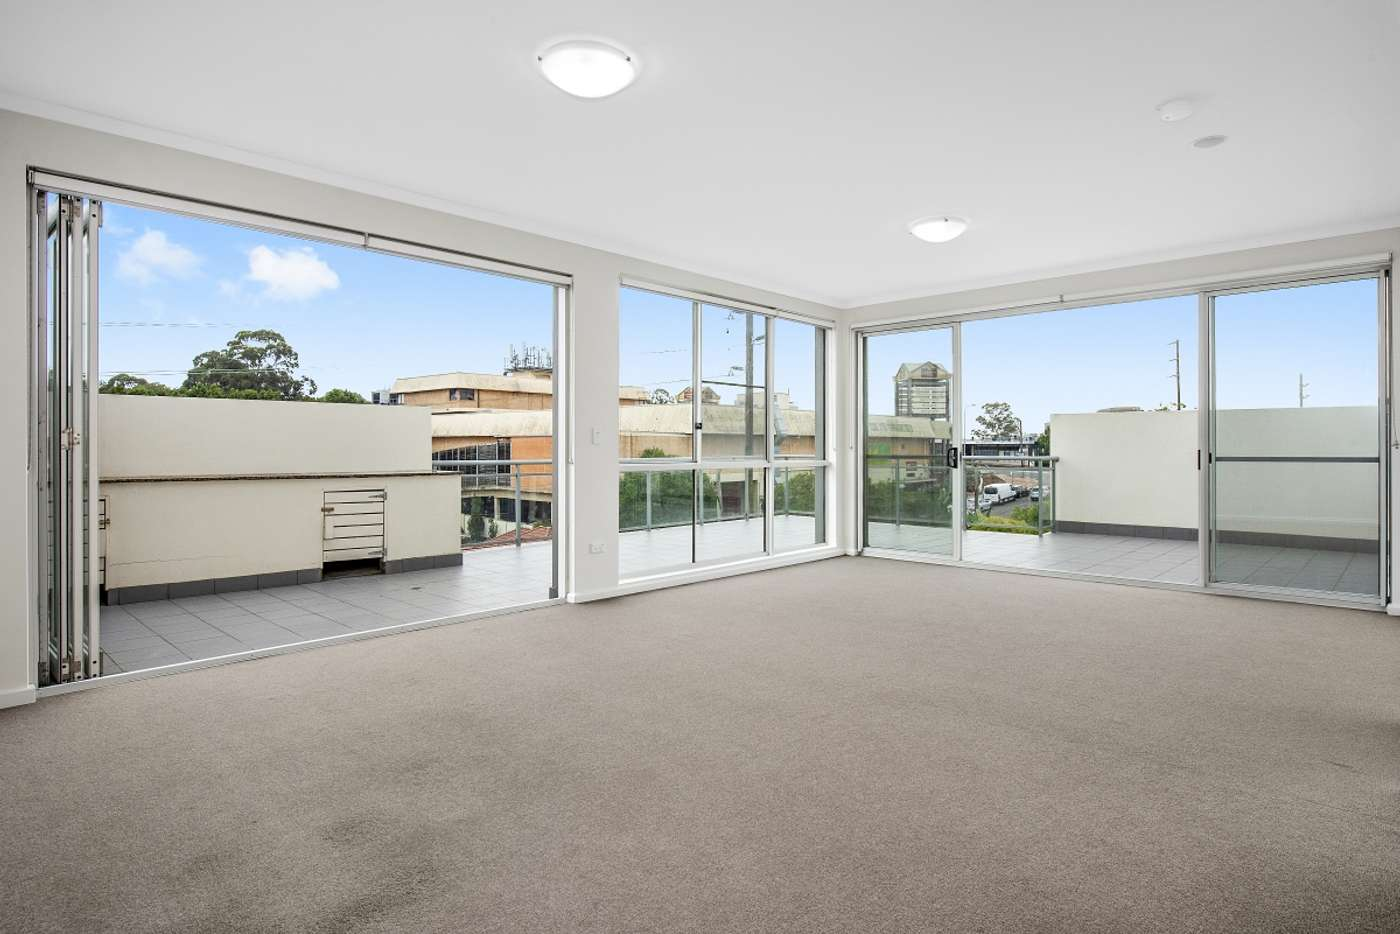 Main view of Homely apartment listing, 28/70-72 Keeler Street, Carlingford NSW 2118